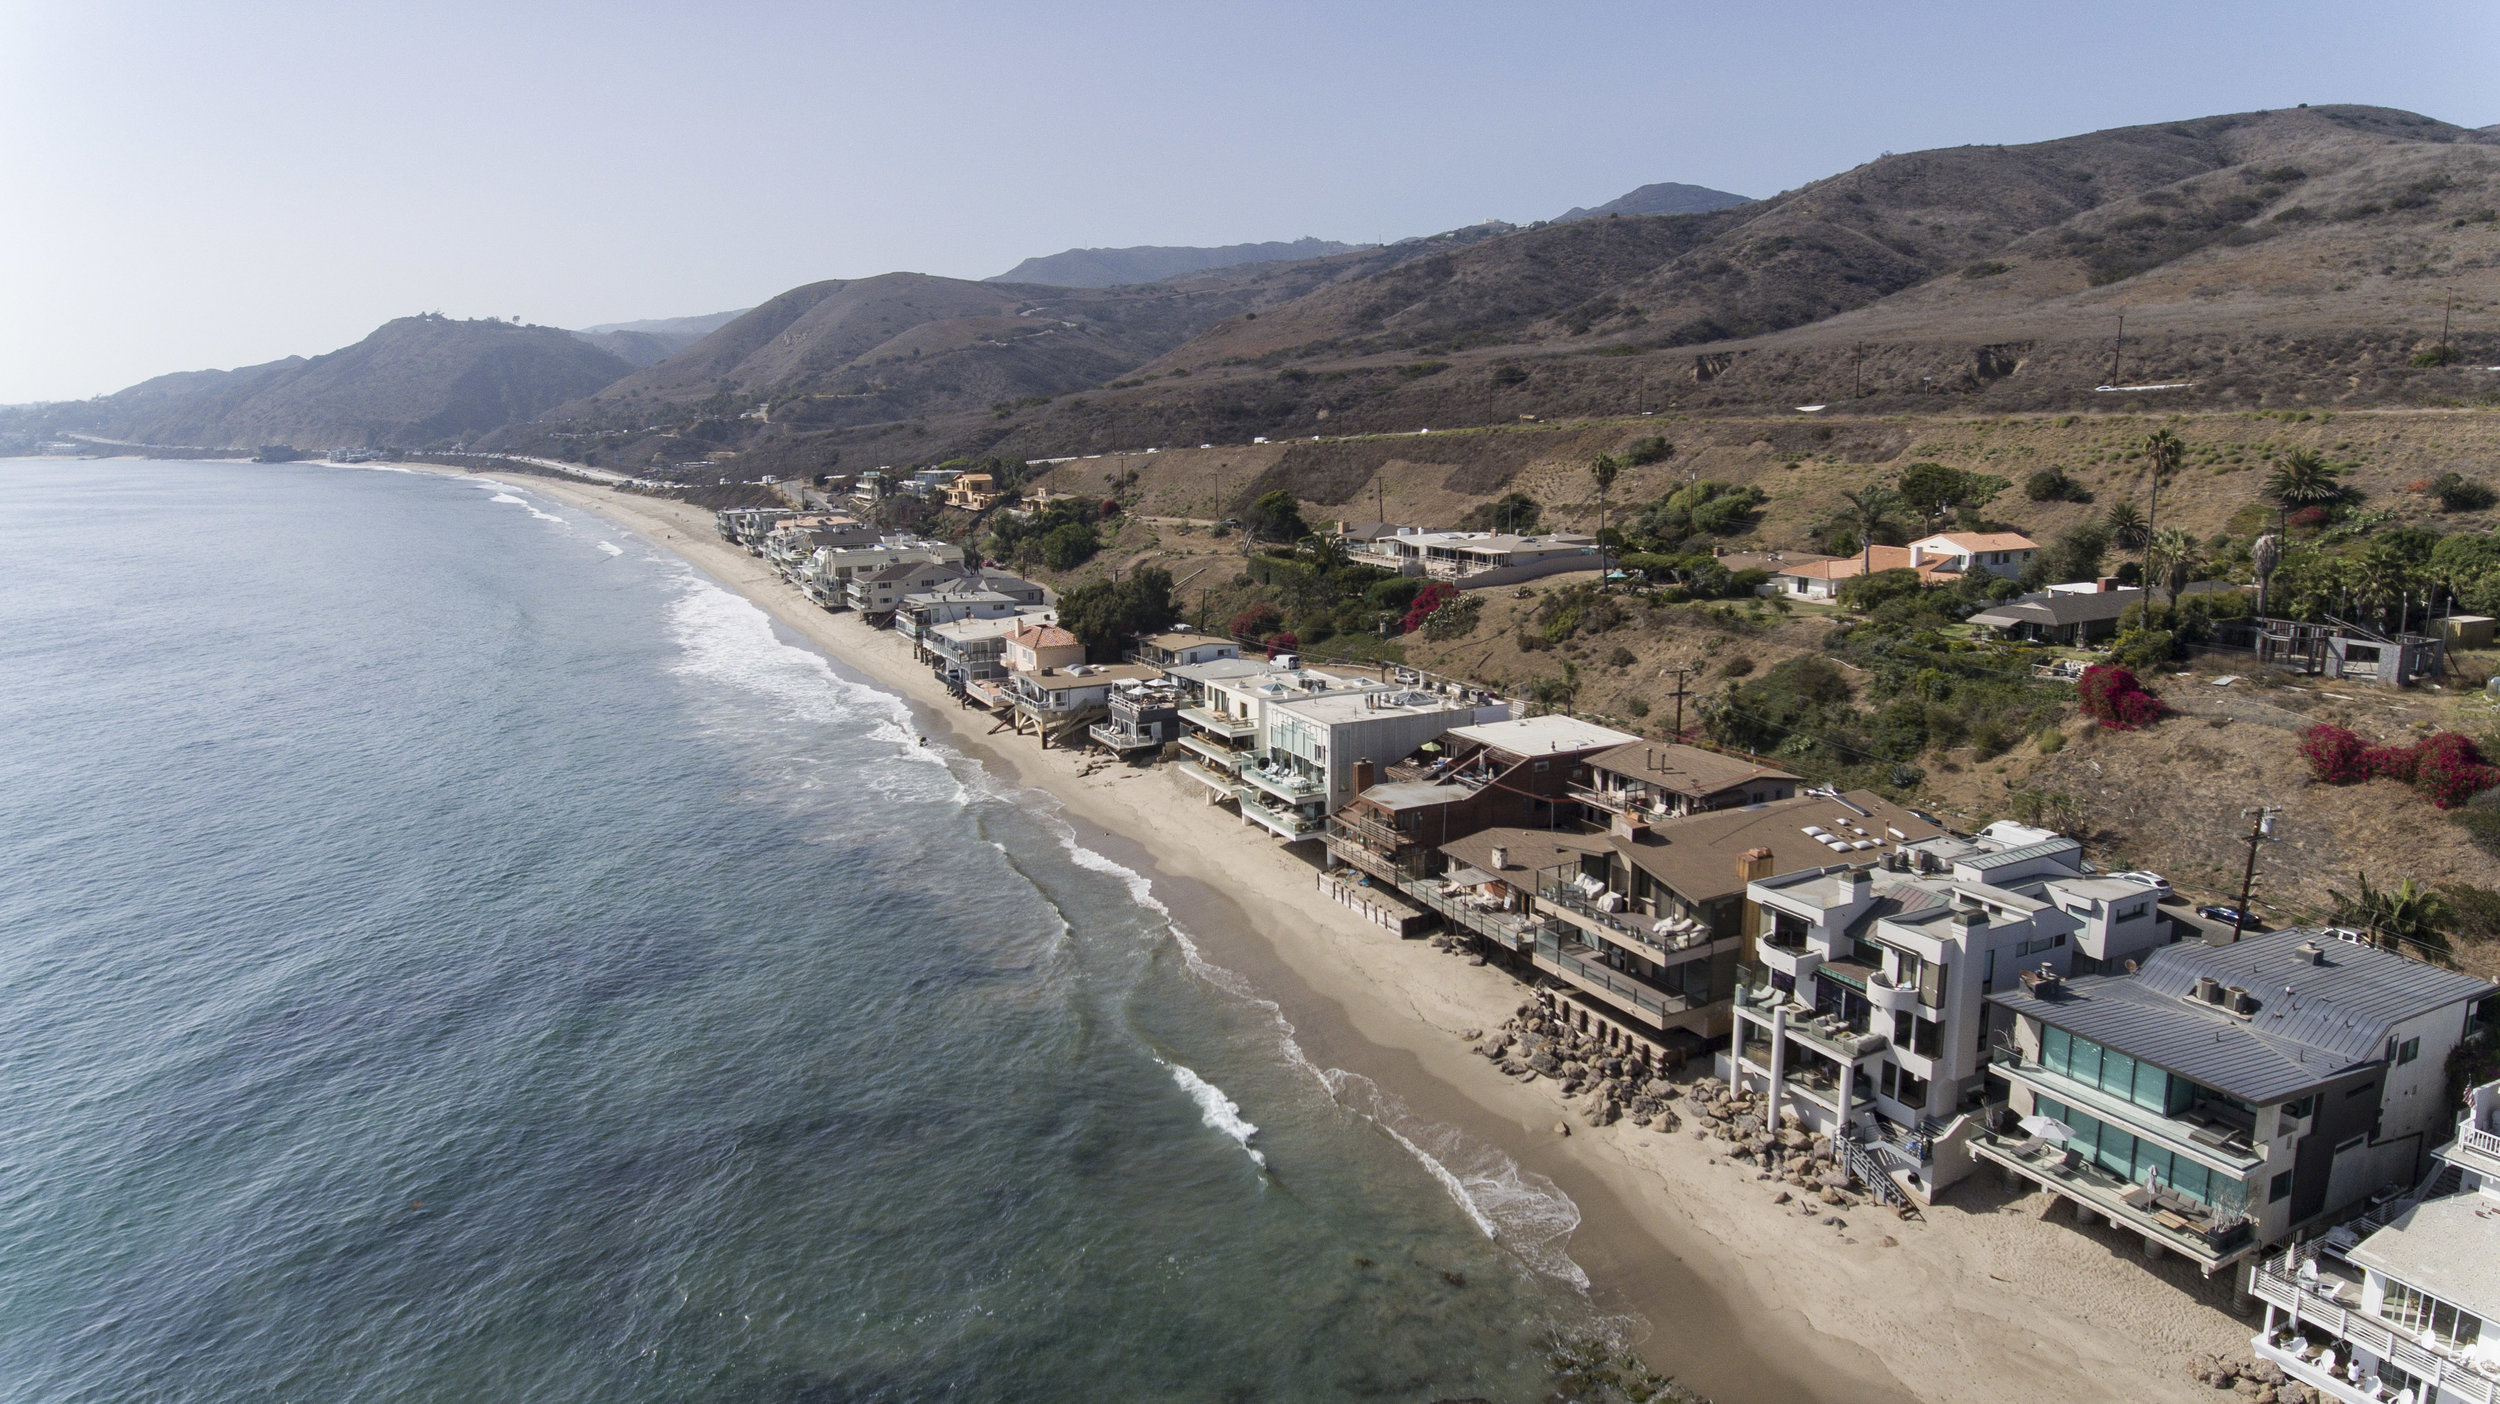 006 Aerial 25252 Malibu Road For Sale Lease The Malibu Life Team Luxury Real Estate.jpg